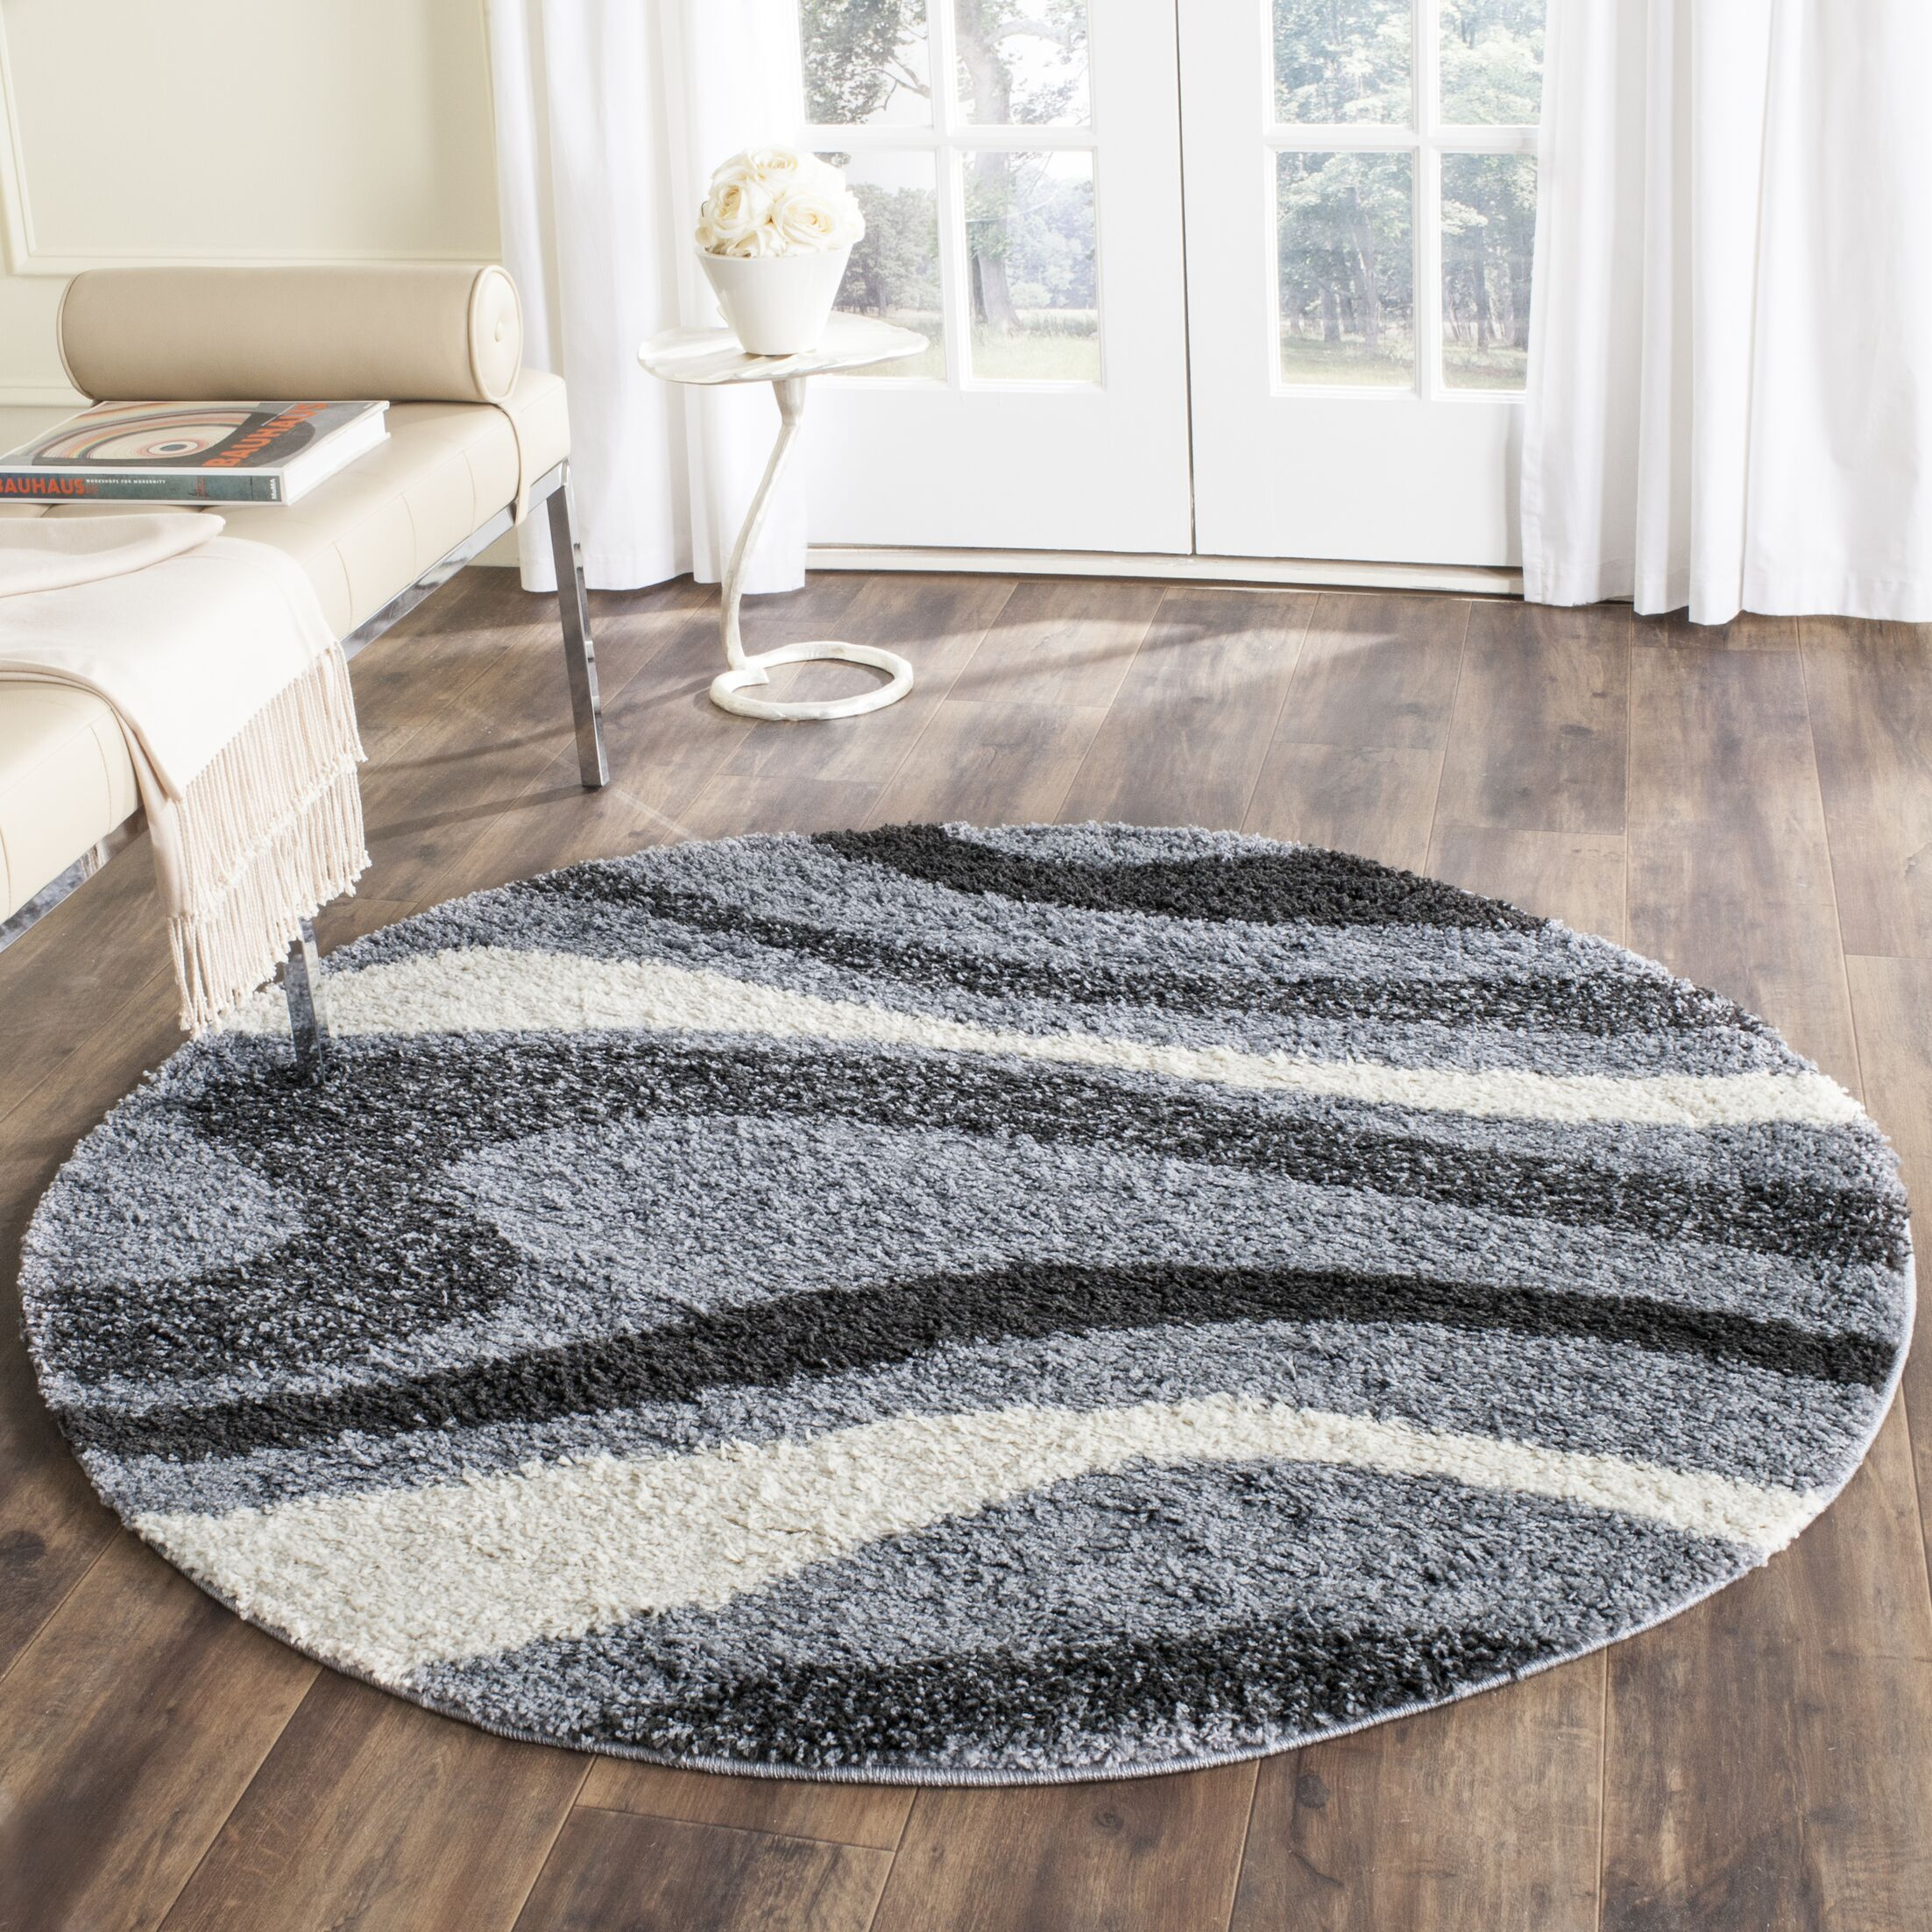 Driffield Gray/Ivory/Back Area Rug Rug Size: Round 5'